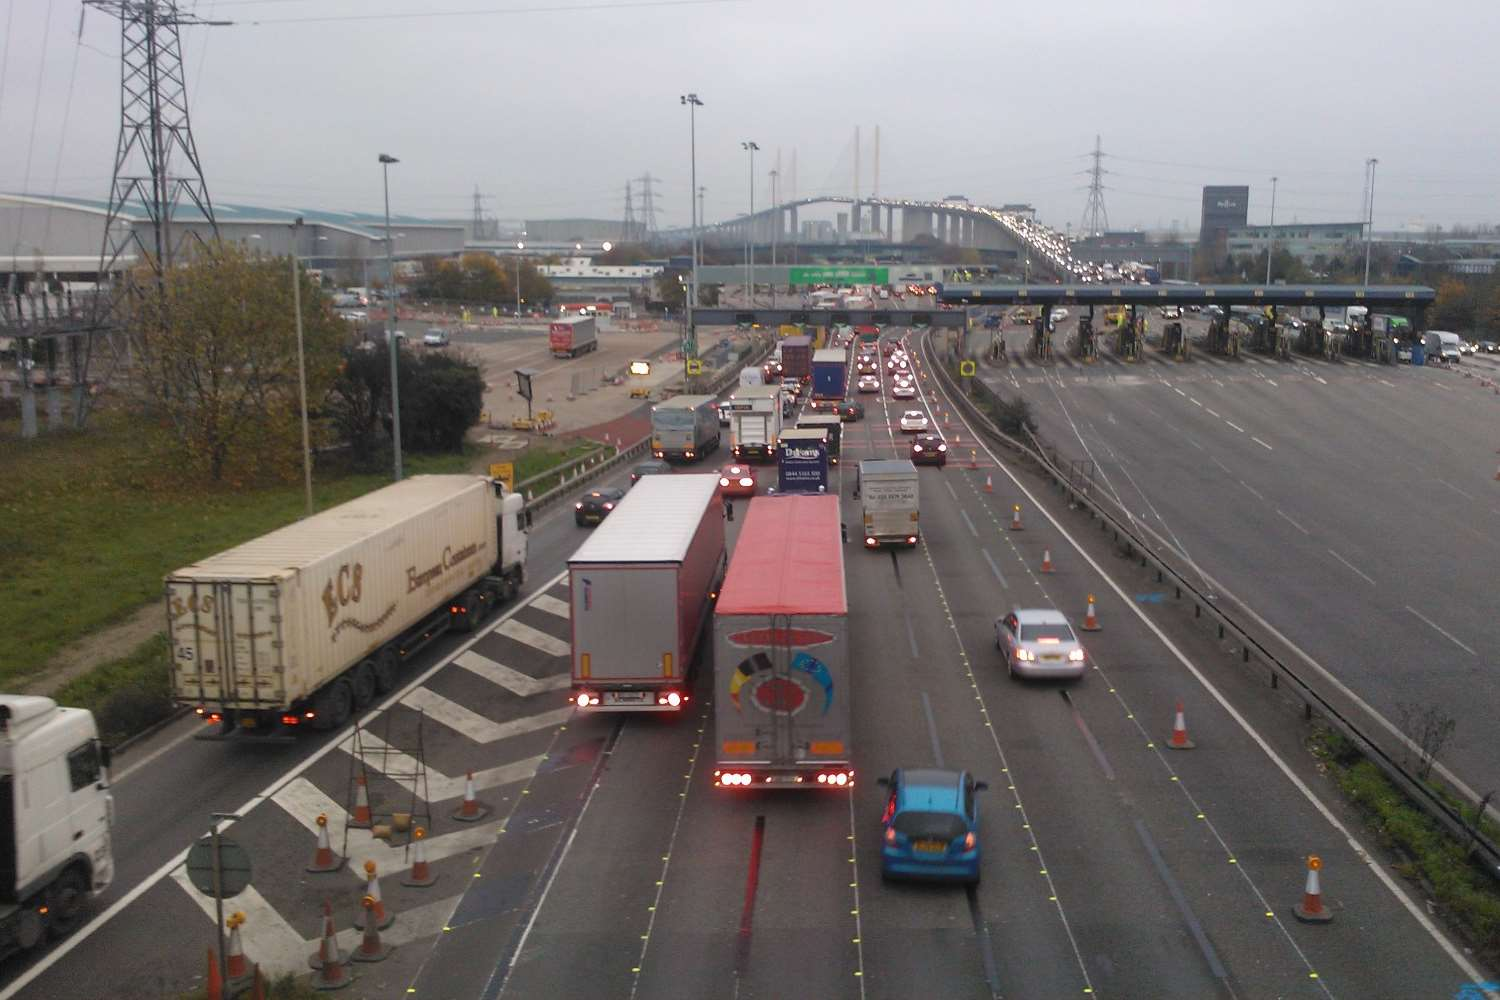 Traffic at around 8.30am at the Dartford Crossing